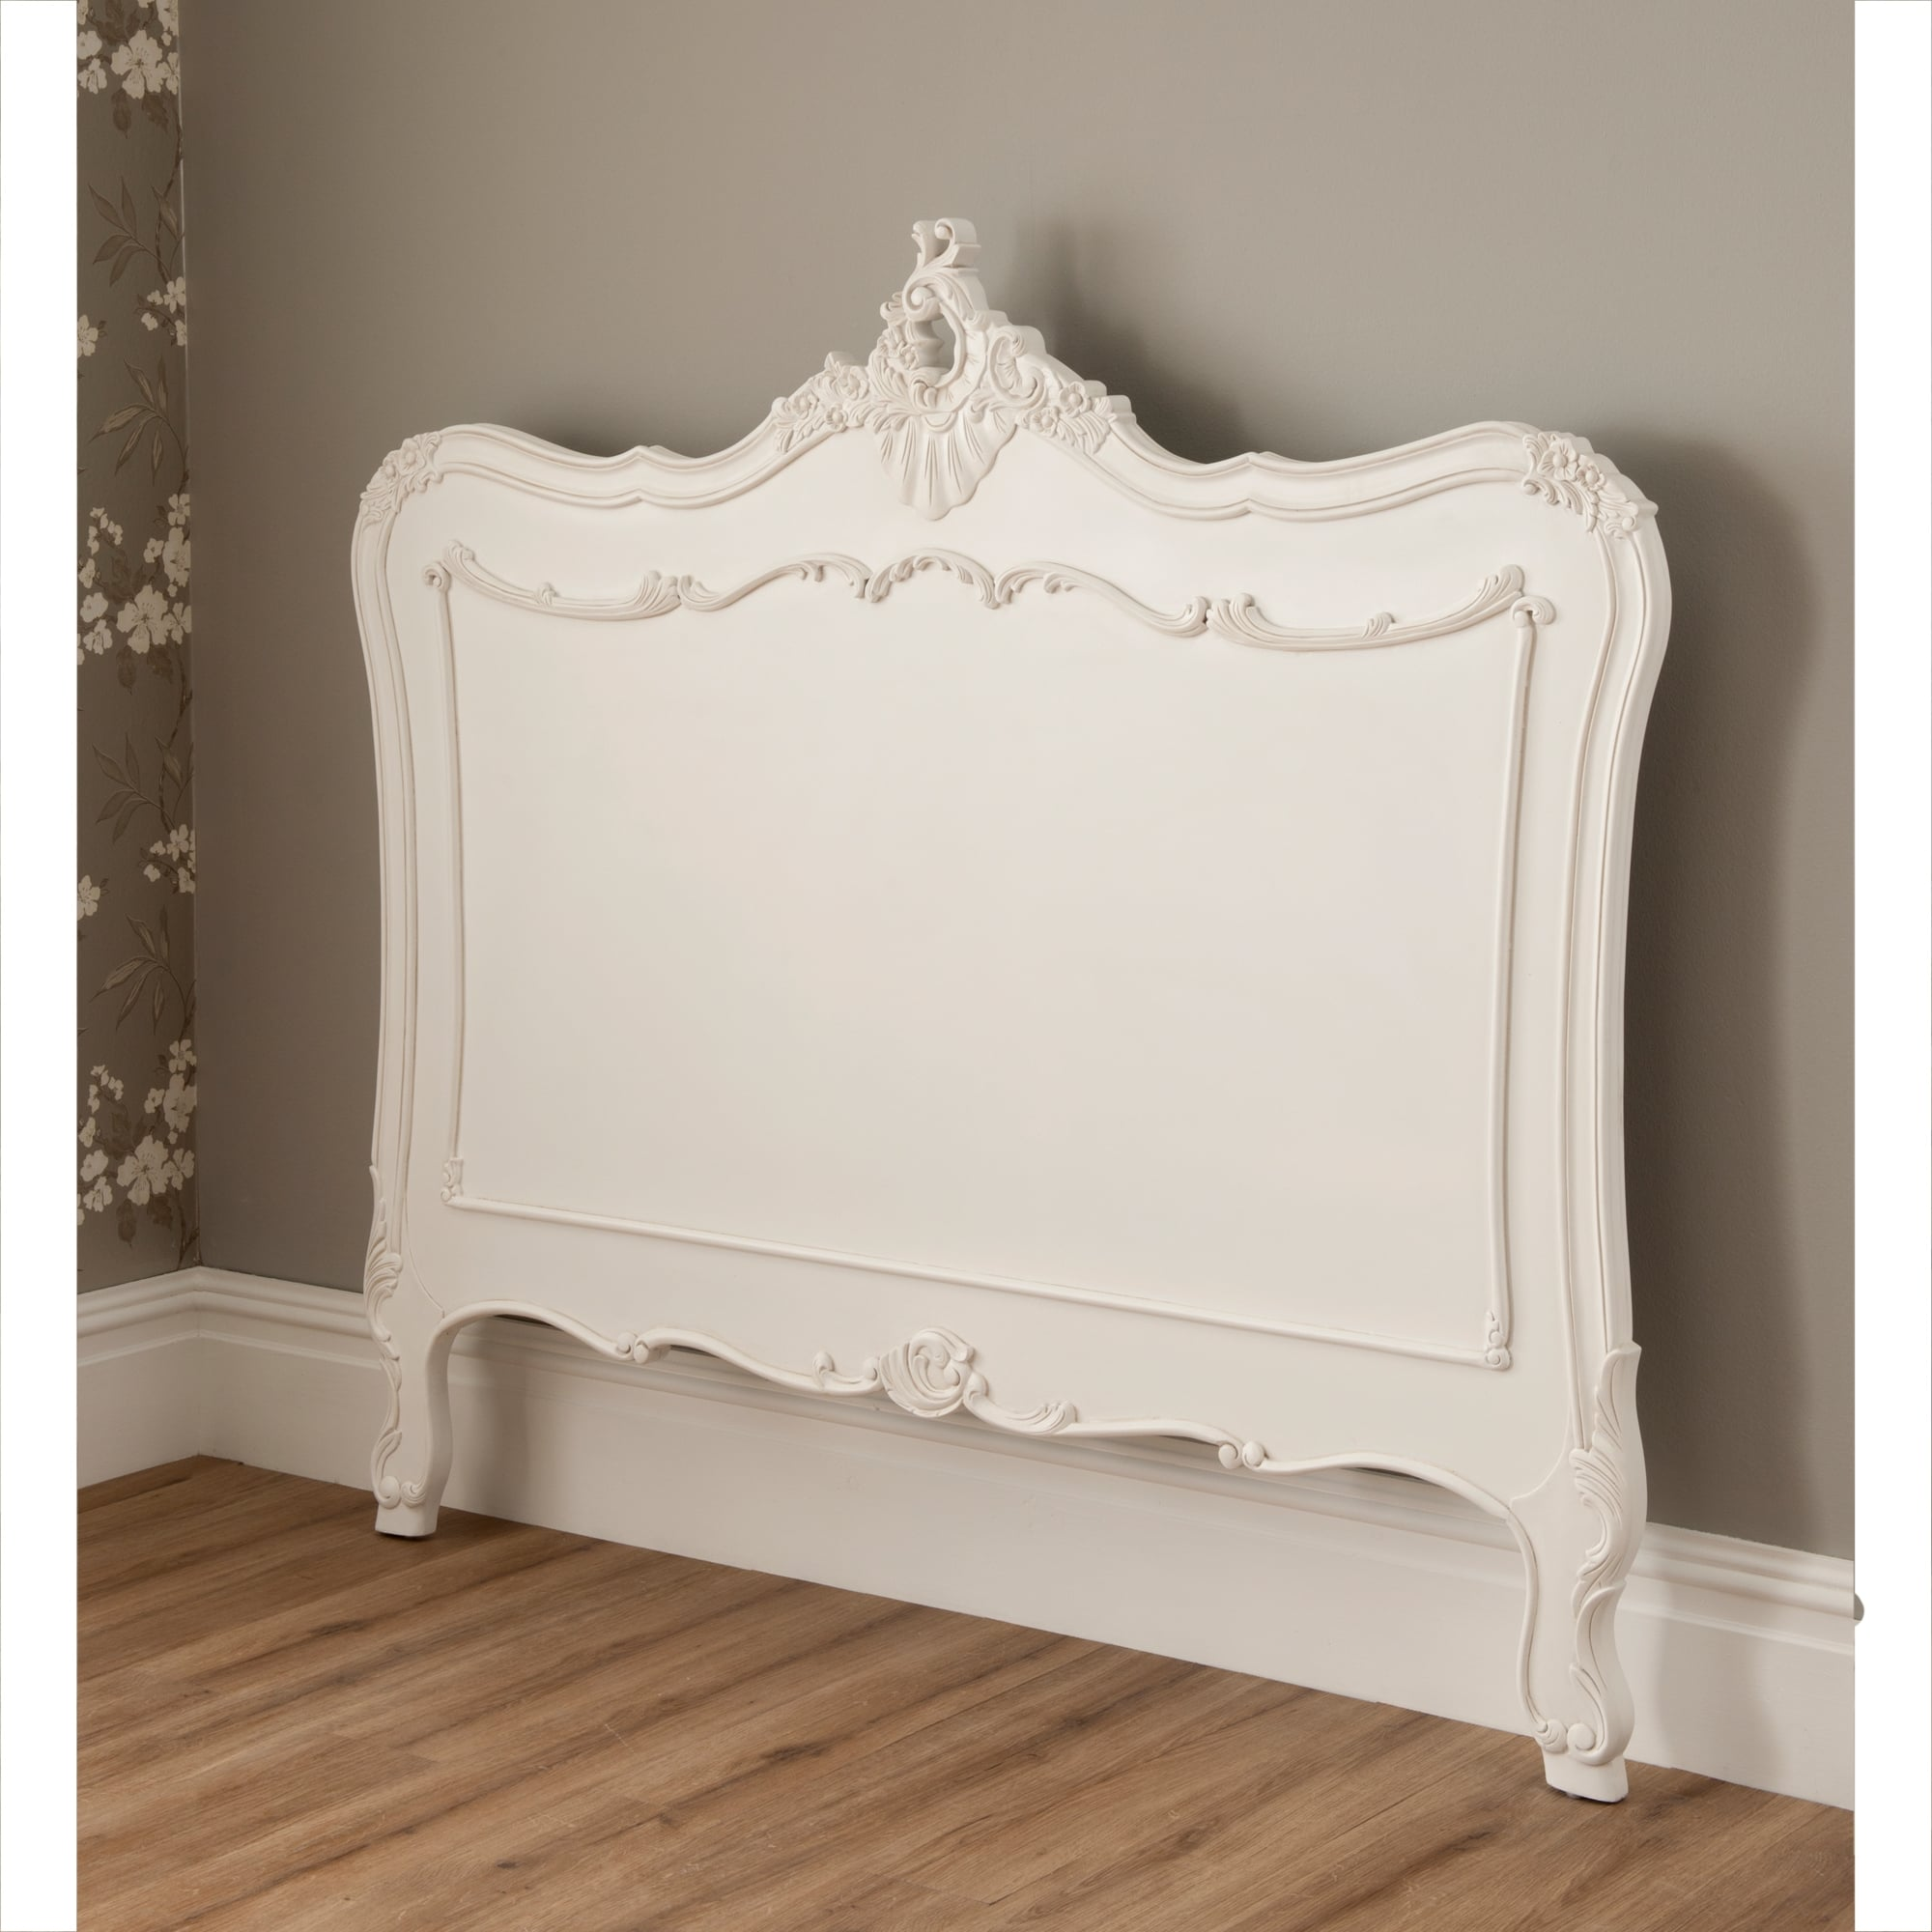 La Rochelle Antique French Headboard working well  : 1472046607 11924800 from www.homesdirect365.co.uk size 2000 x 2000 jpeg 215kB